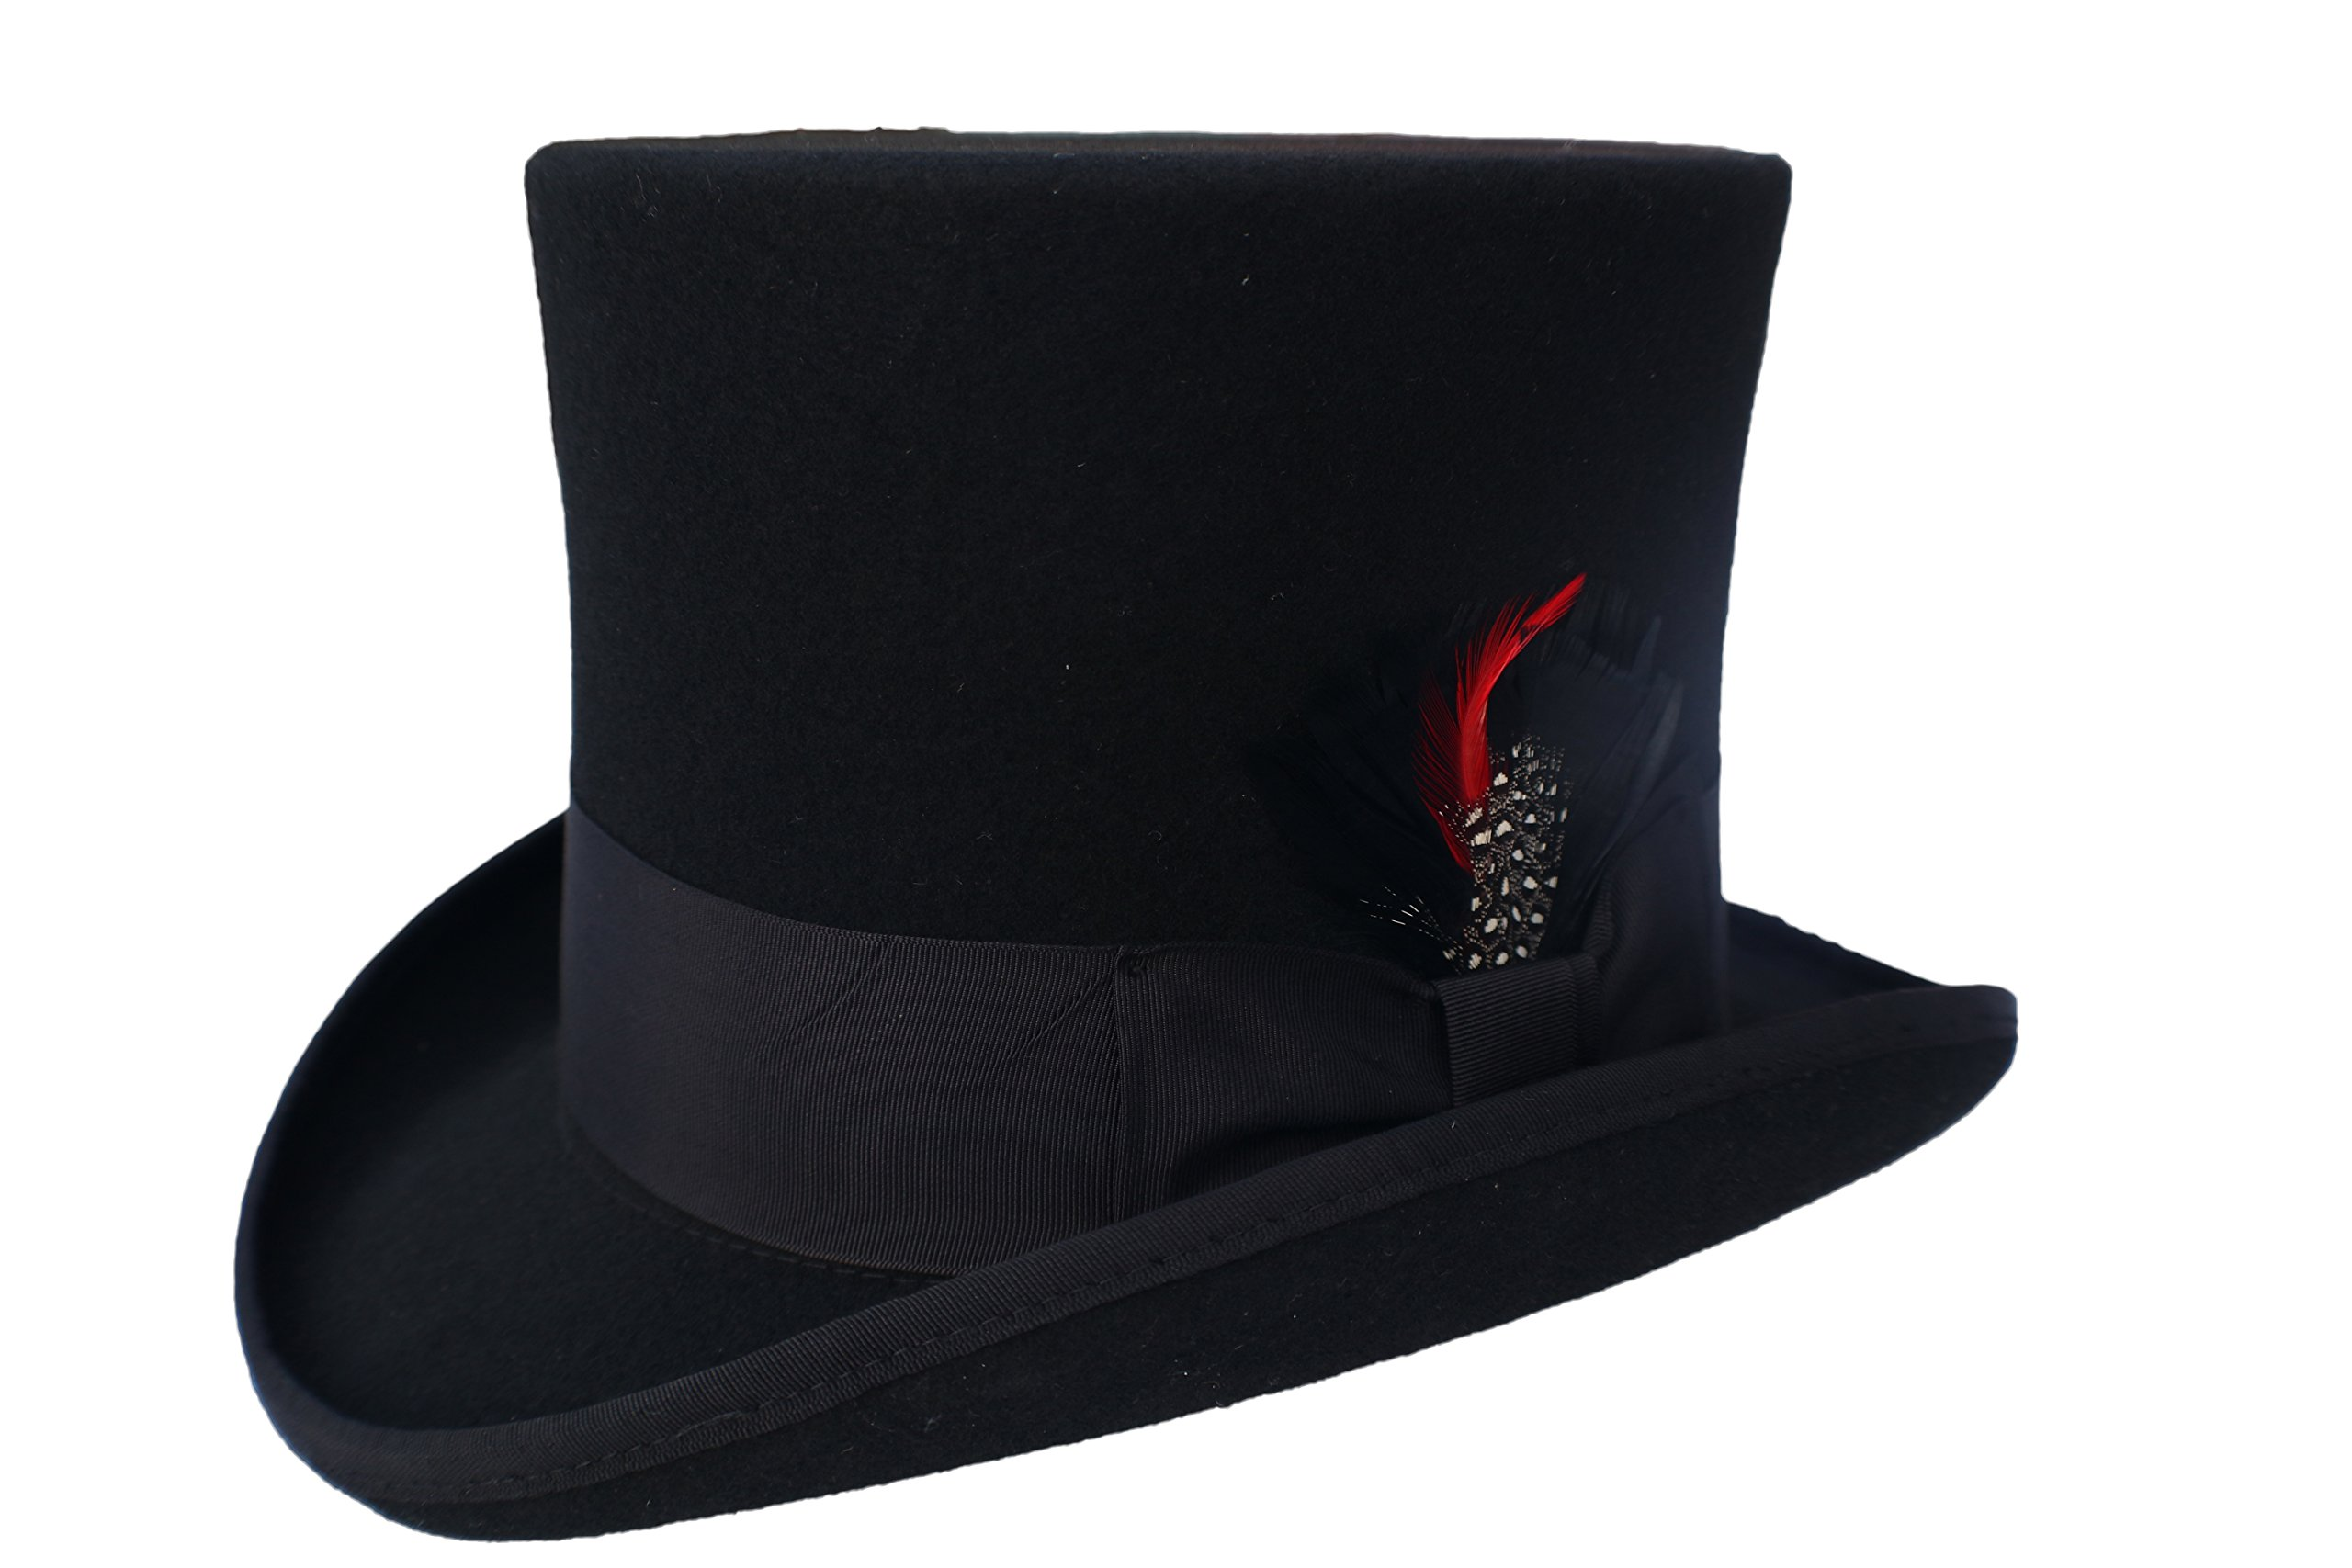 Elegante Men's Black Top Hat - 100% Wool (Medium)